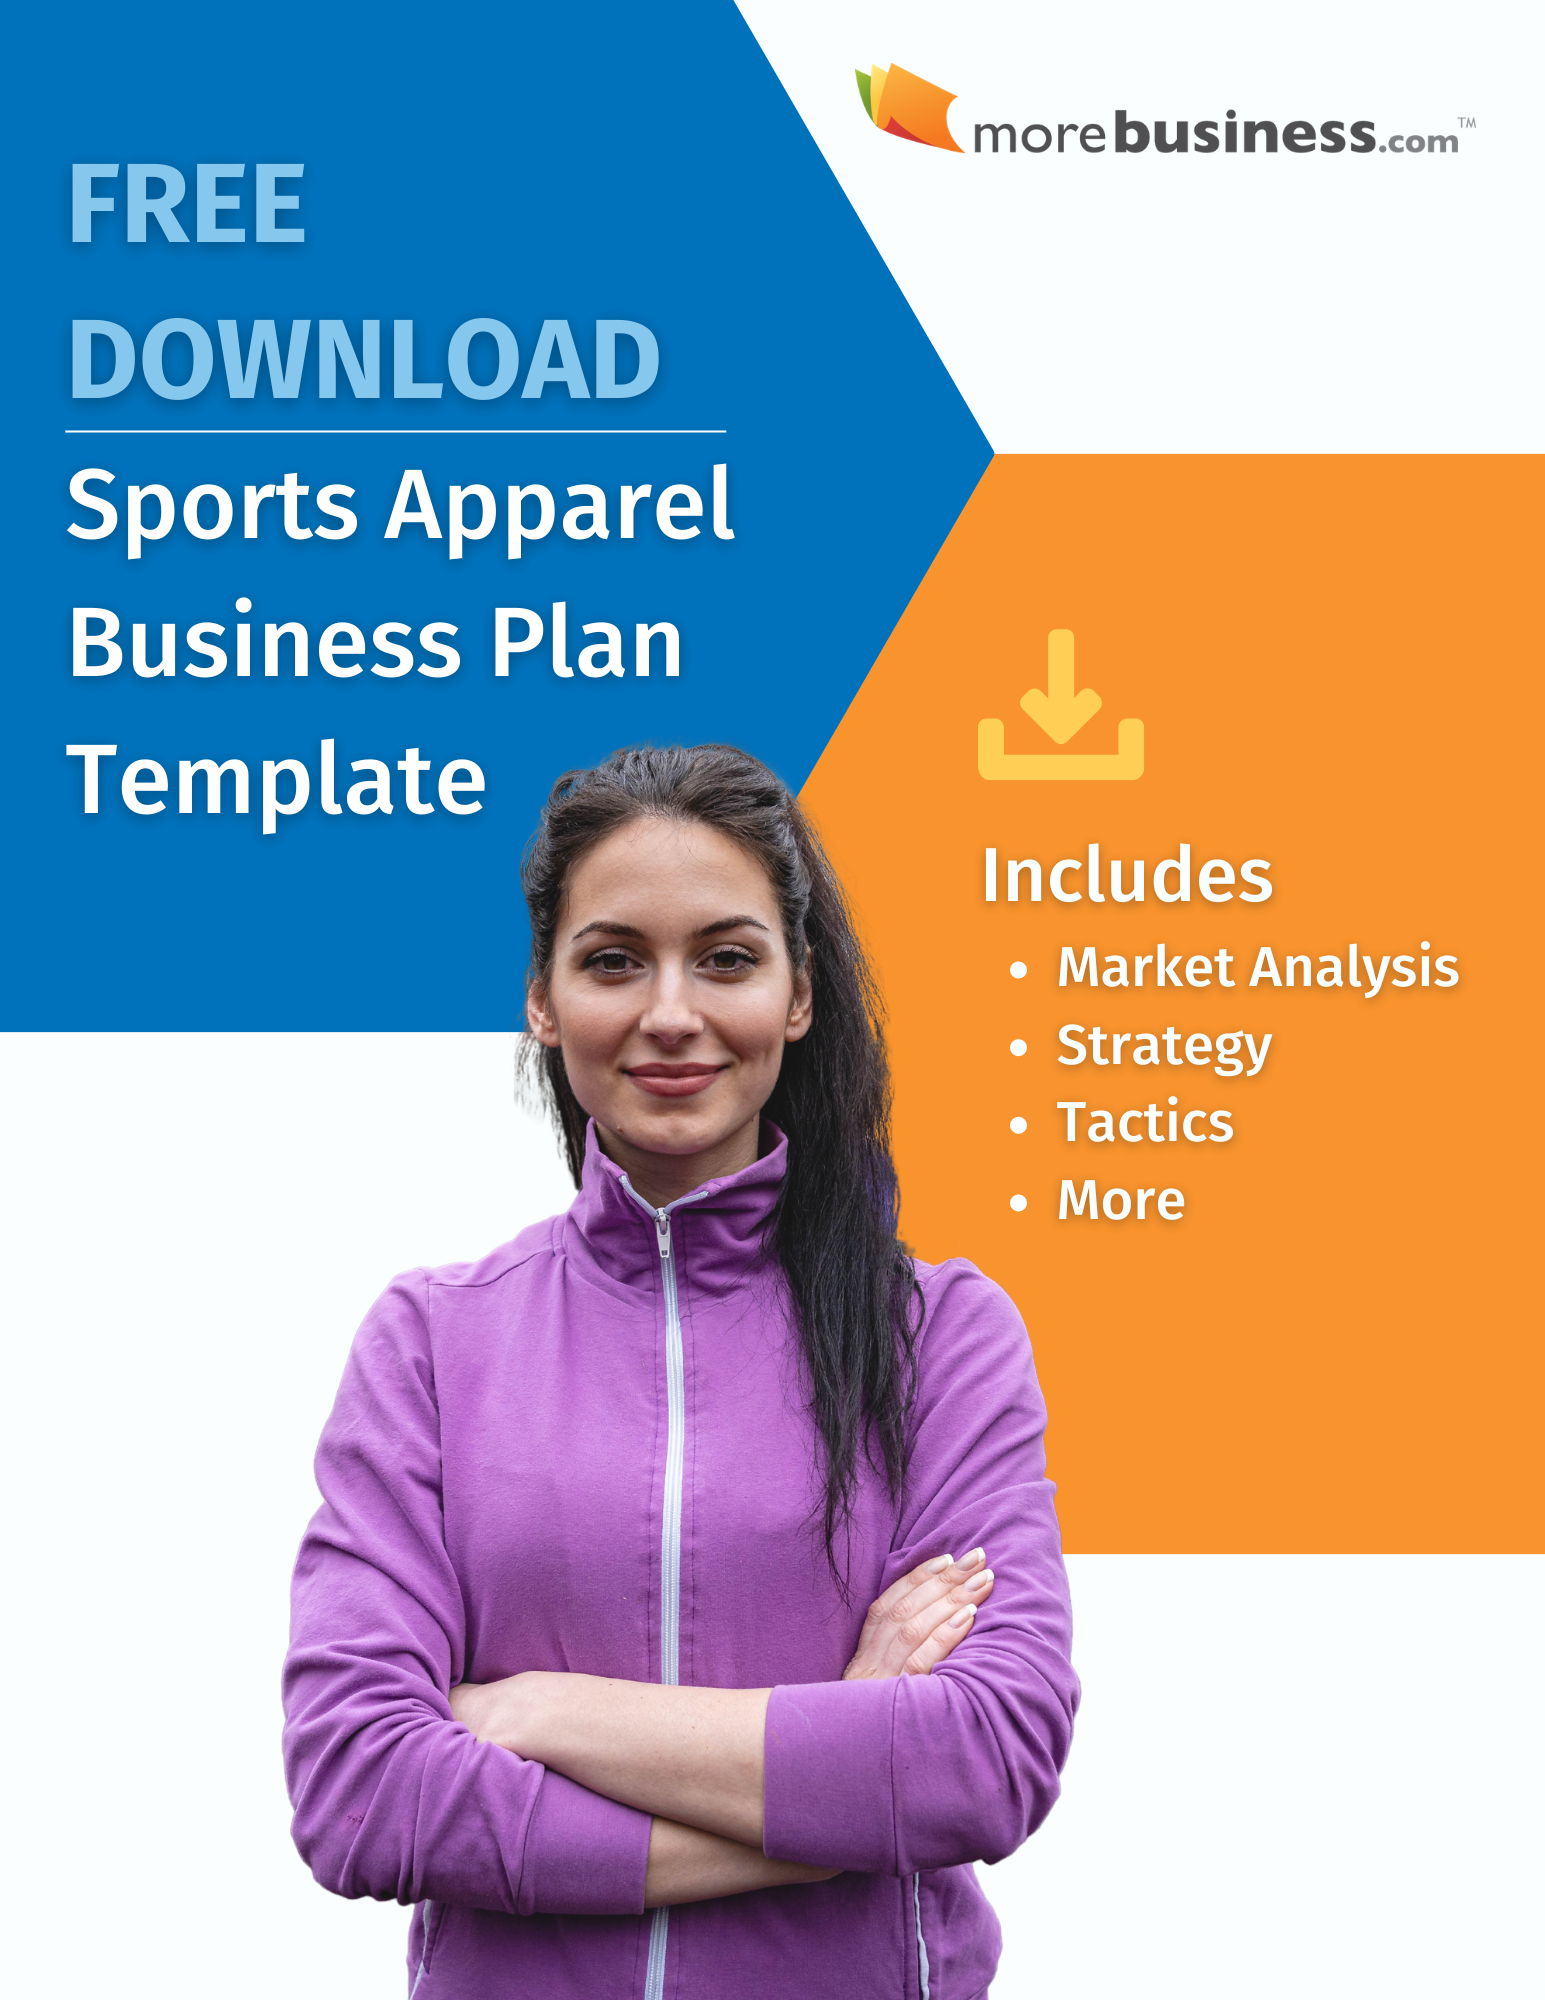 sports apparel business plan - free download